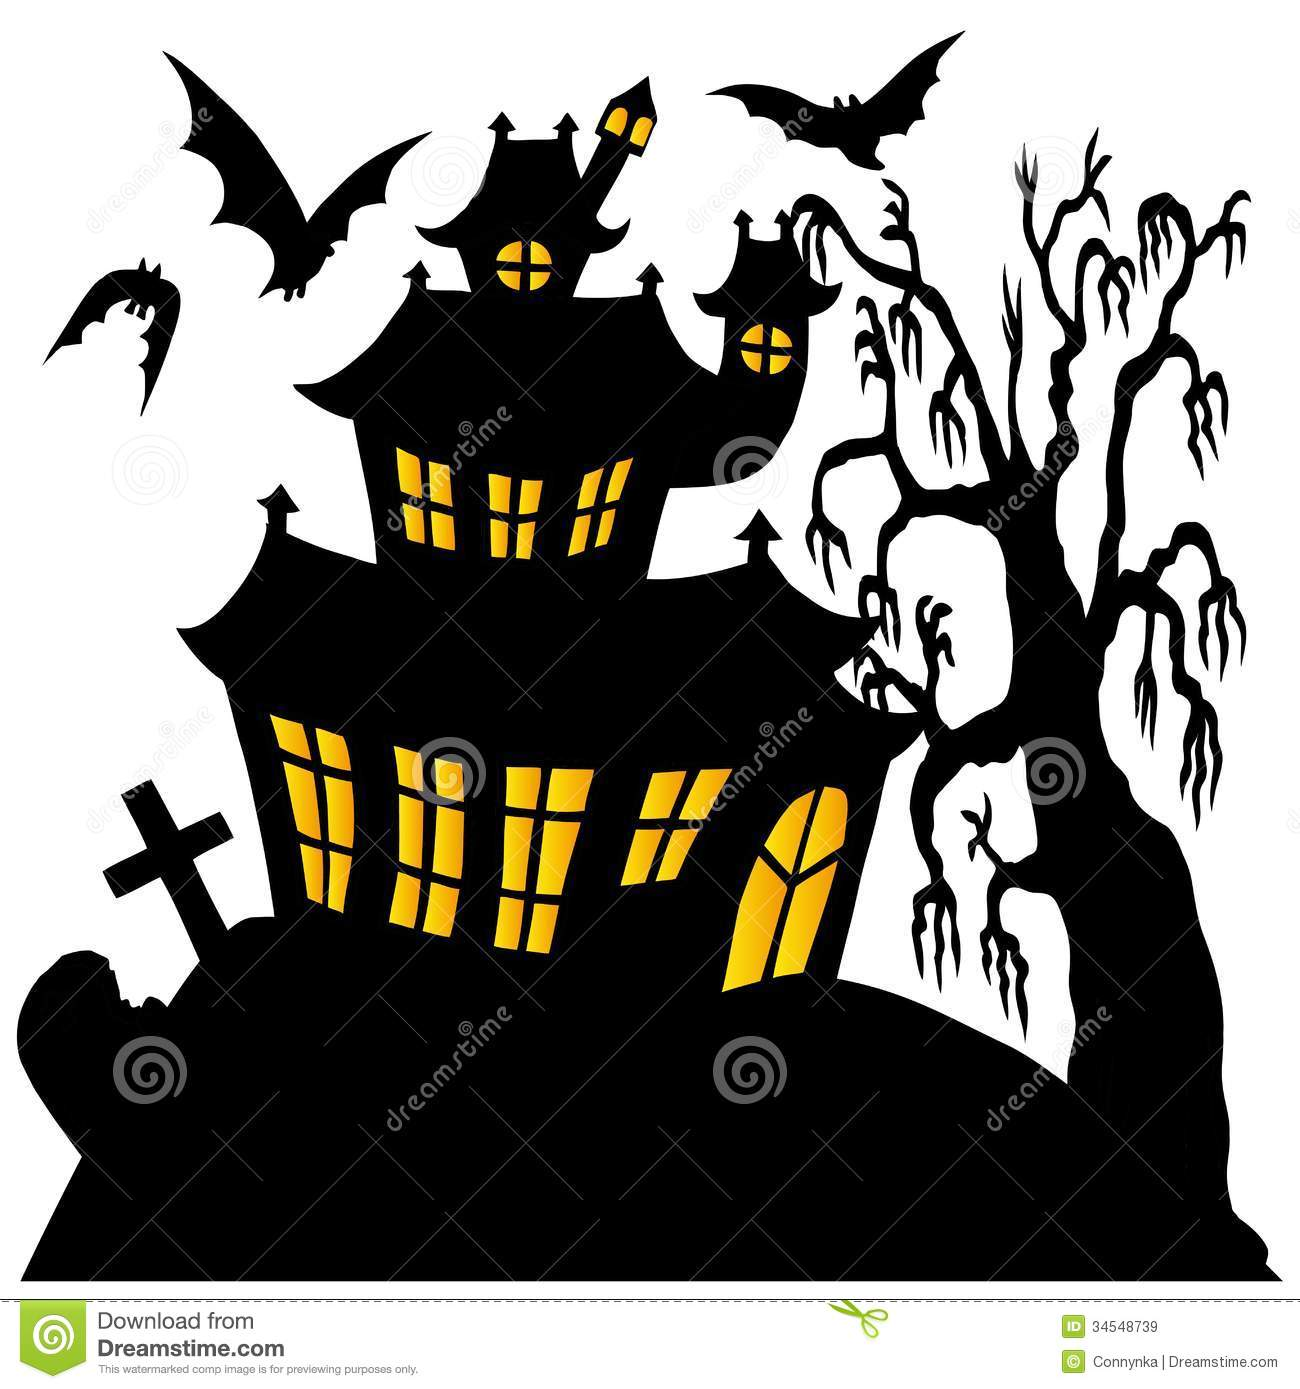 silhouette spooky house 02 royalty free stock images tombstone shape vector tombstone vector free